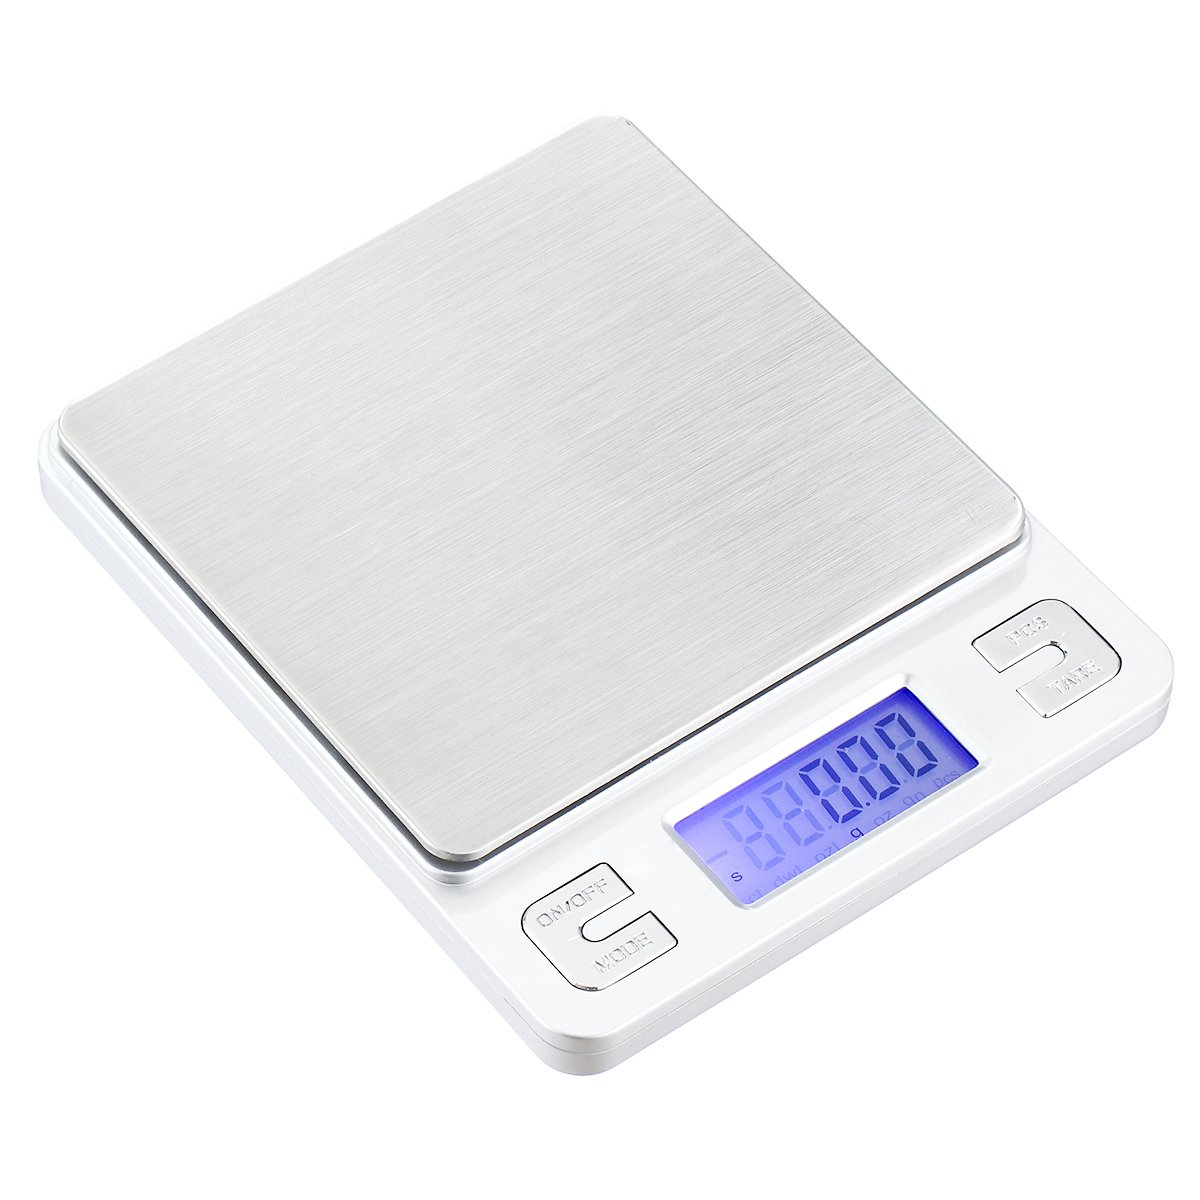 Kitchen Scale,TBBSC 3000g/0.1g Digital Pocket Stainless Jewelry & Kitchen Food Scale (Glod) TBBSC Limited I2000-56